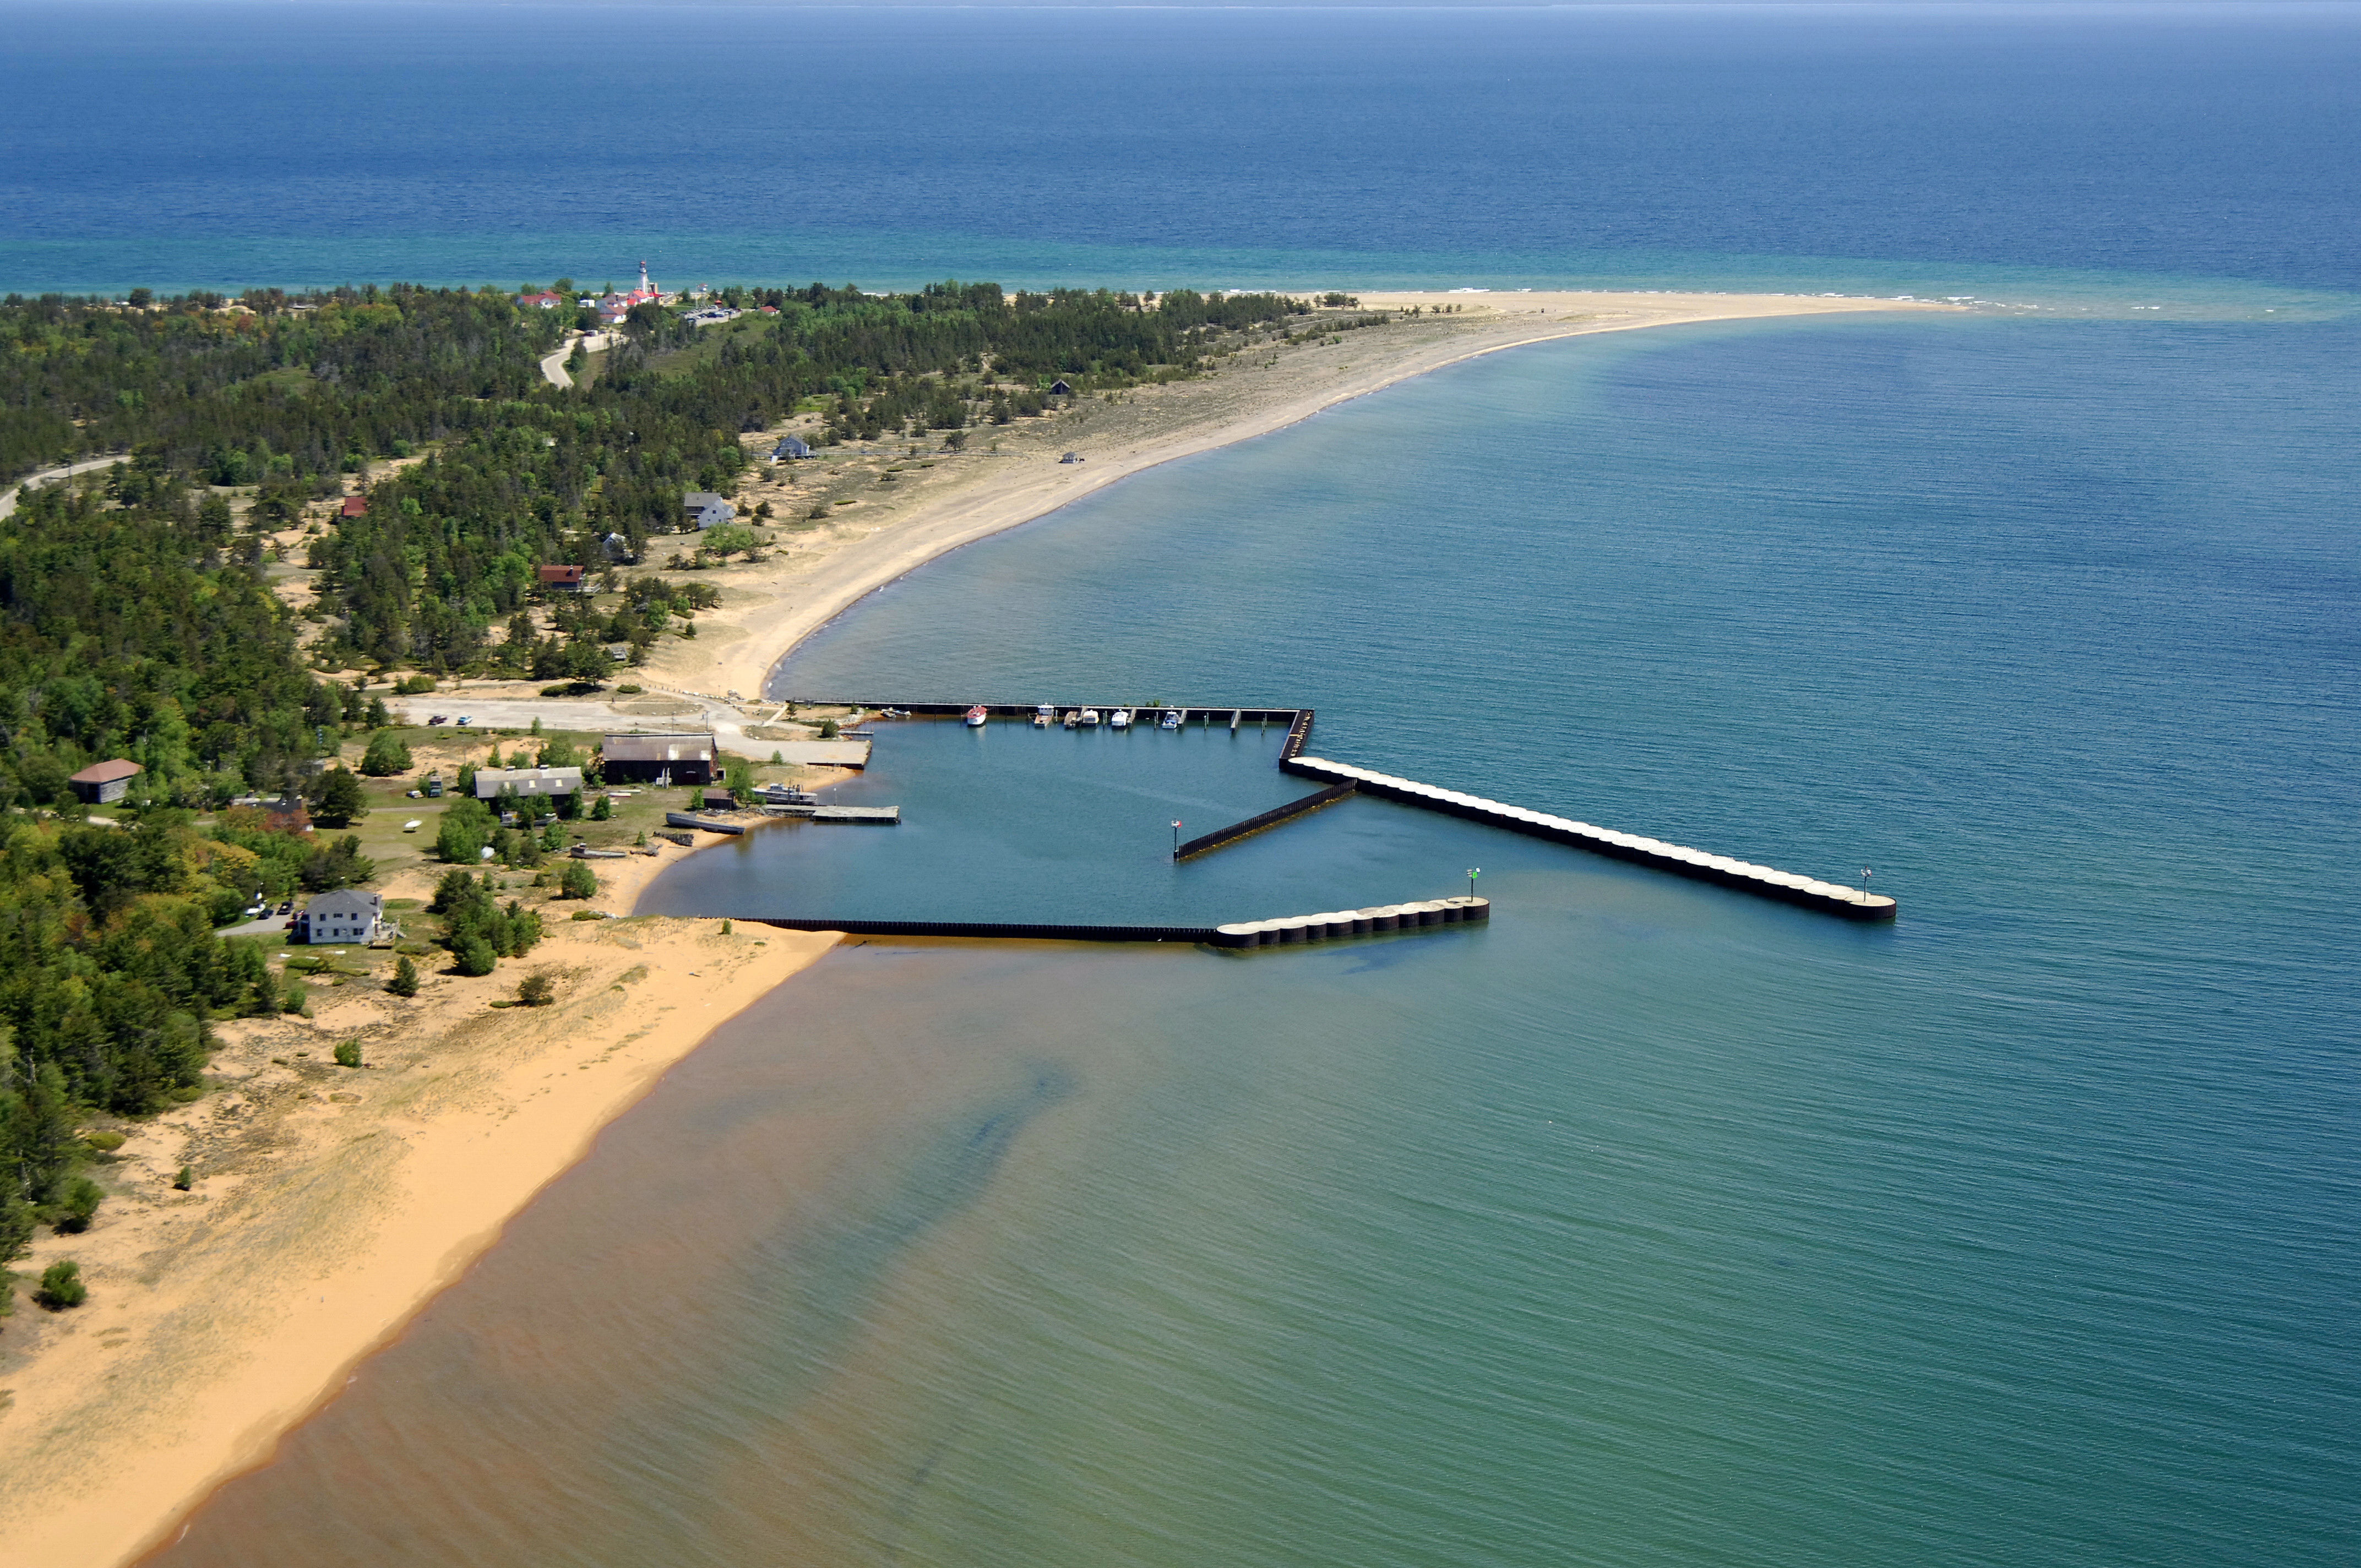 Whitefish point state docks in whitefish point mi united for White fish point